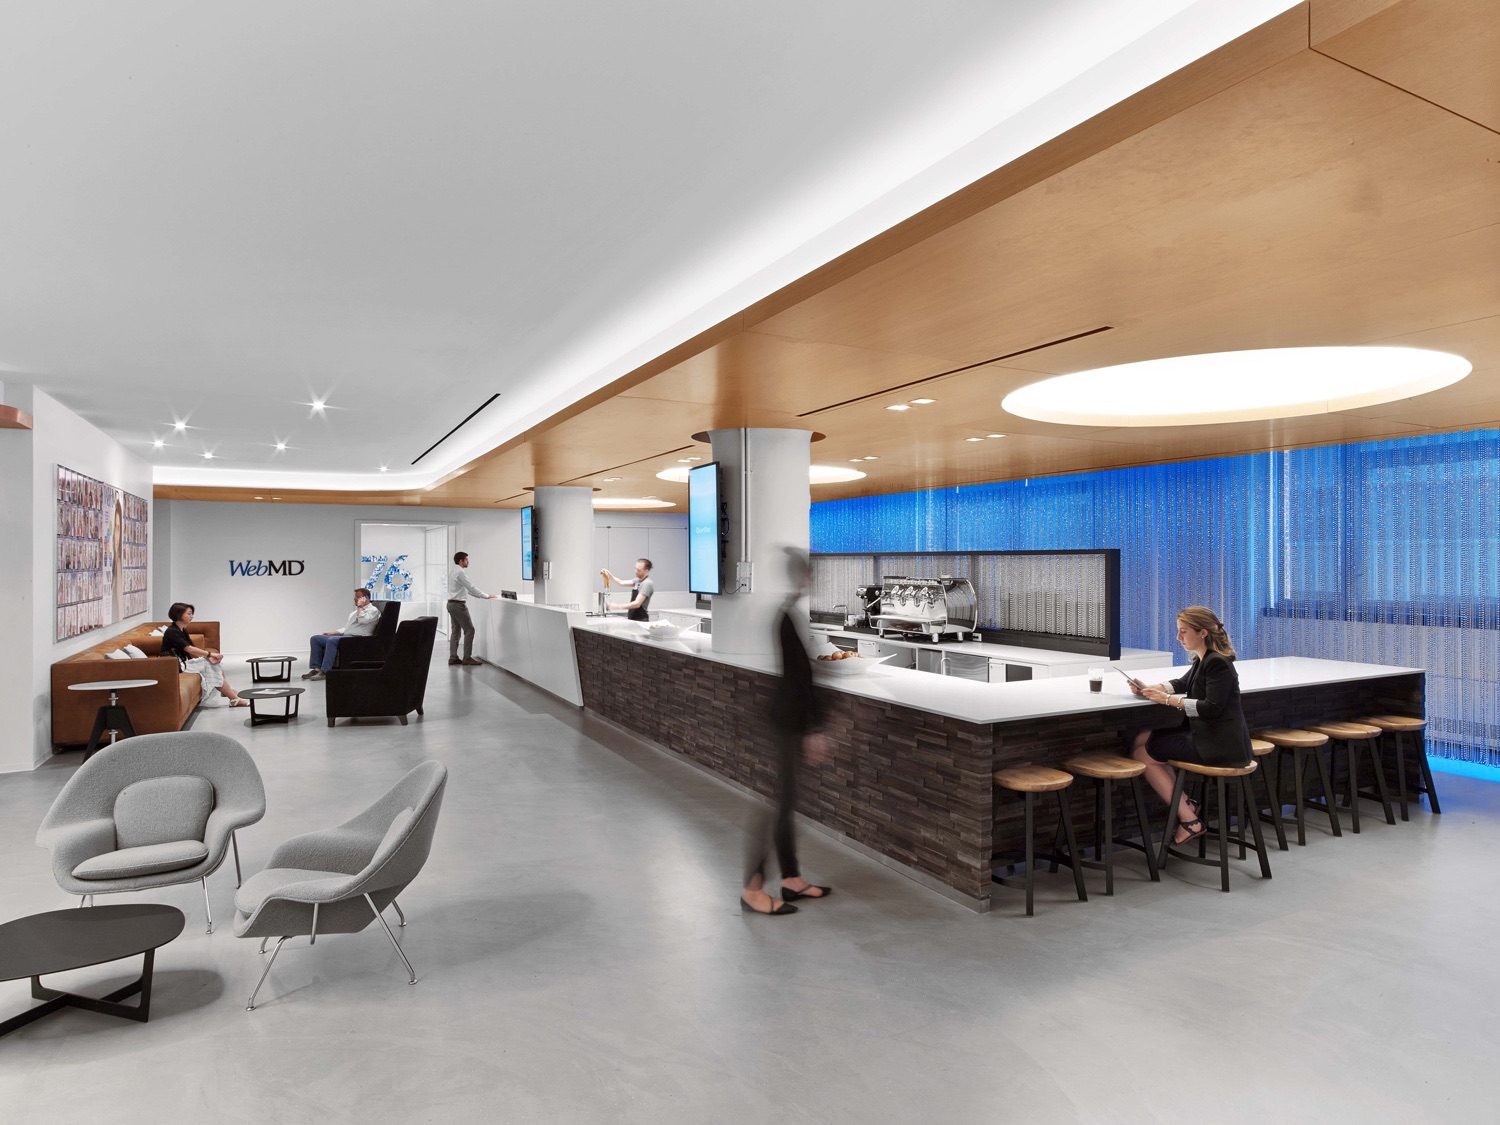 web-md-nyc-office-8